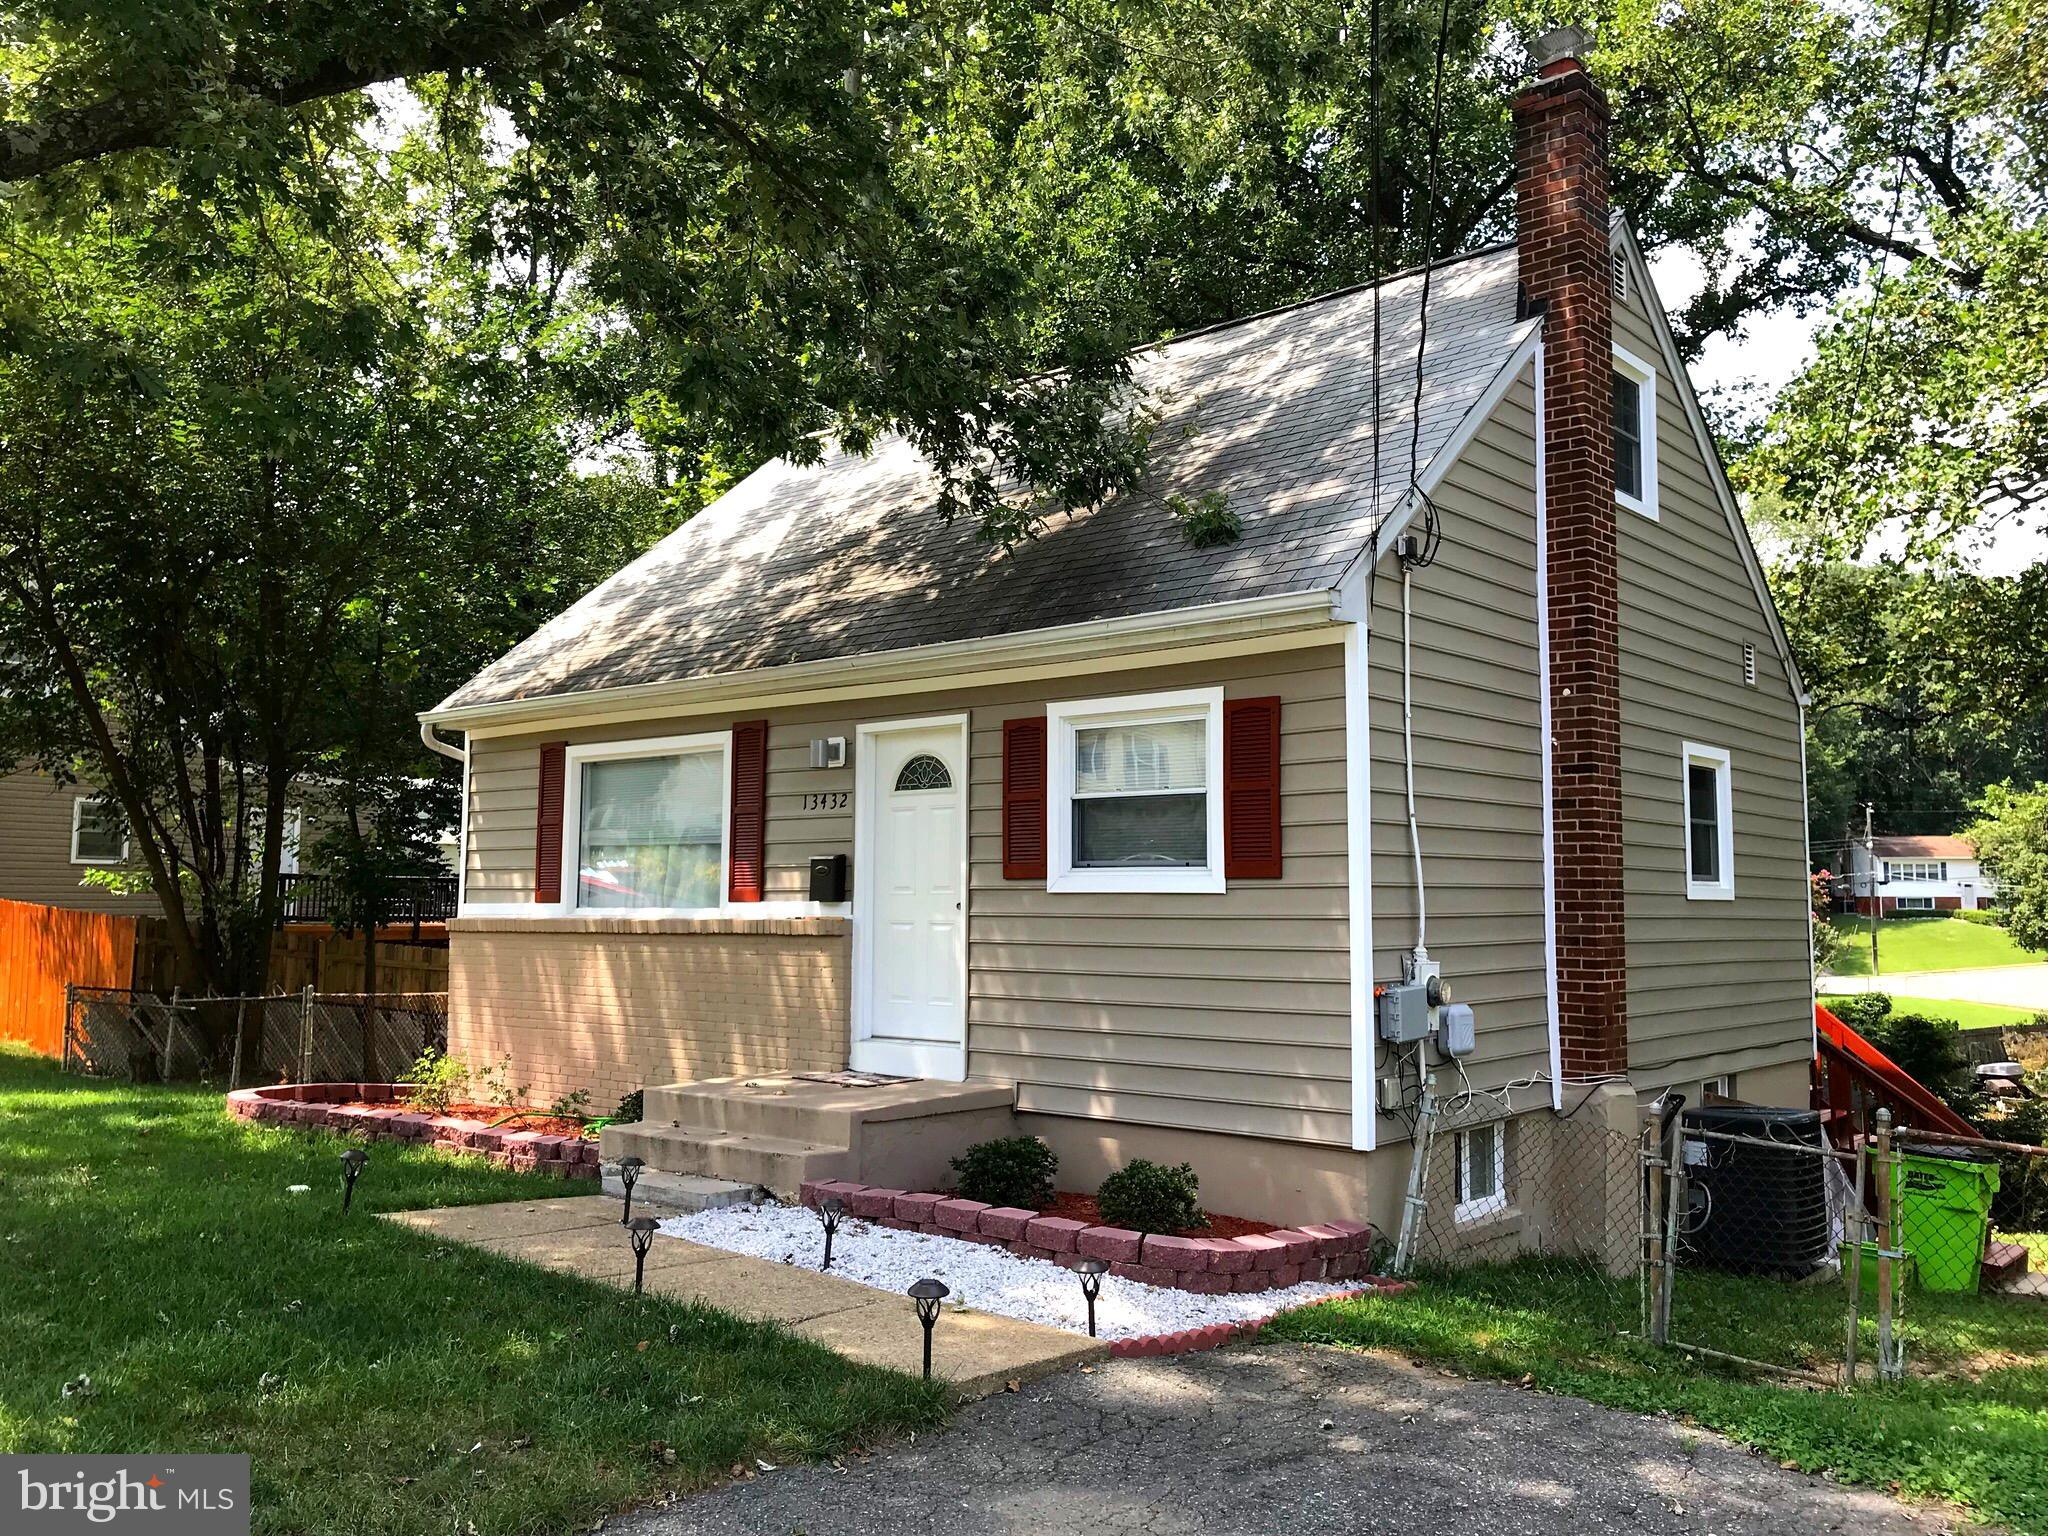 Ready to move-in, Great location, Check with your realtor to view this house